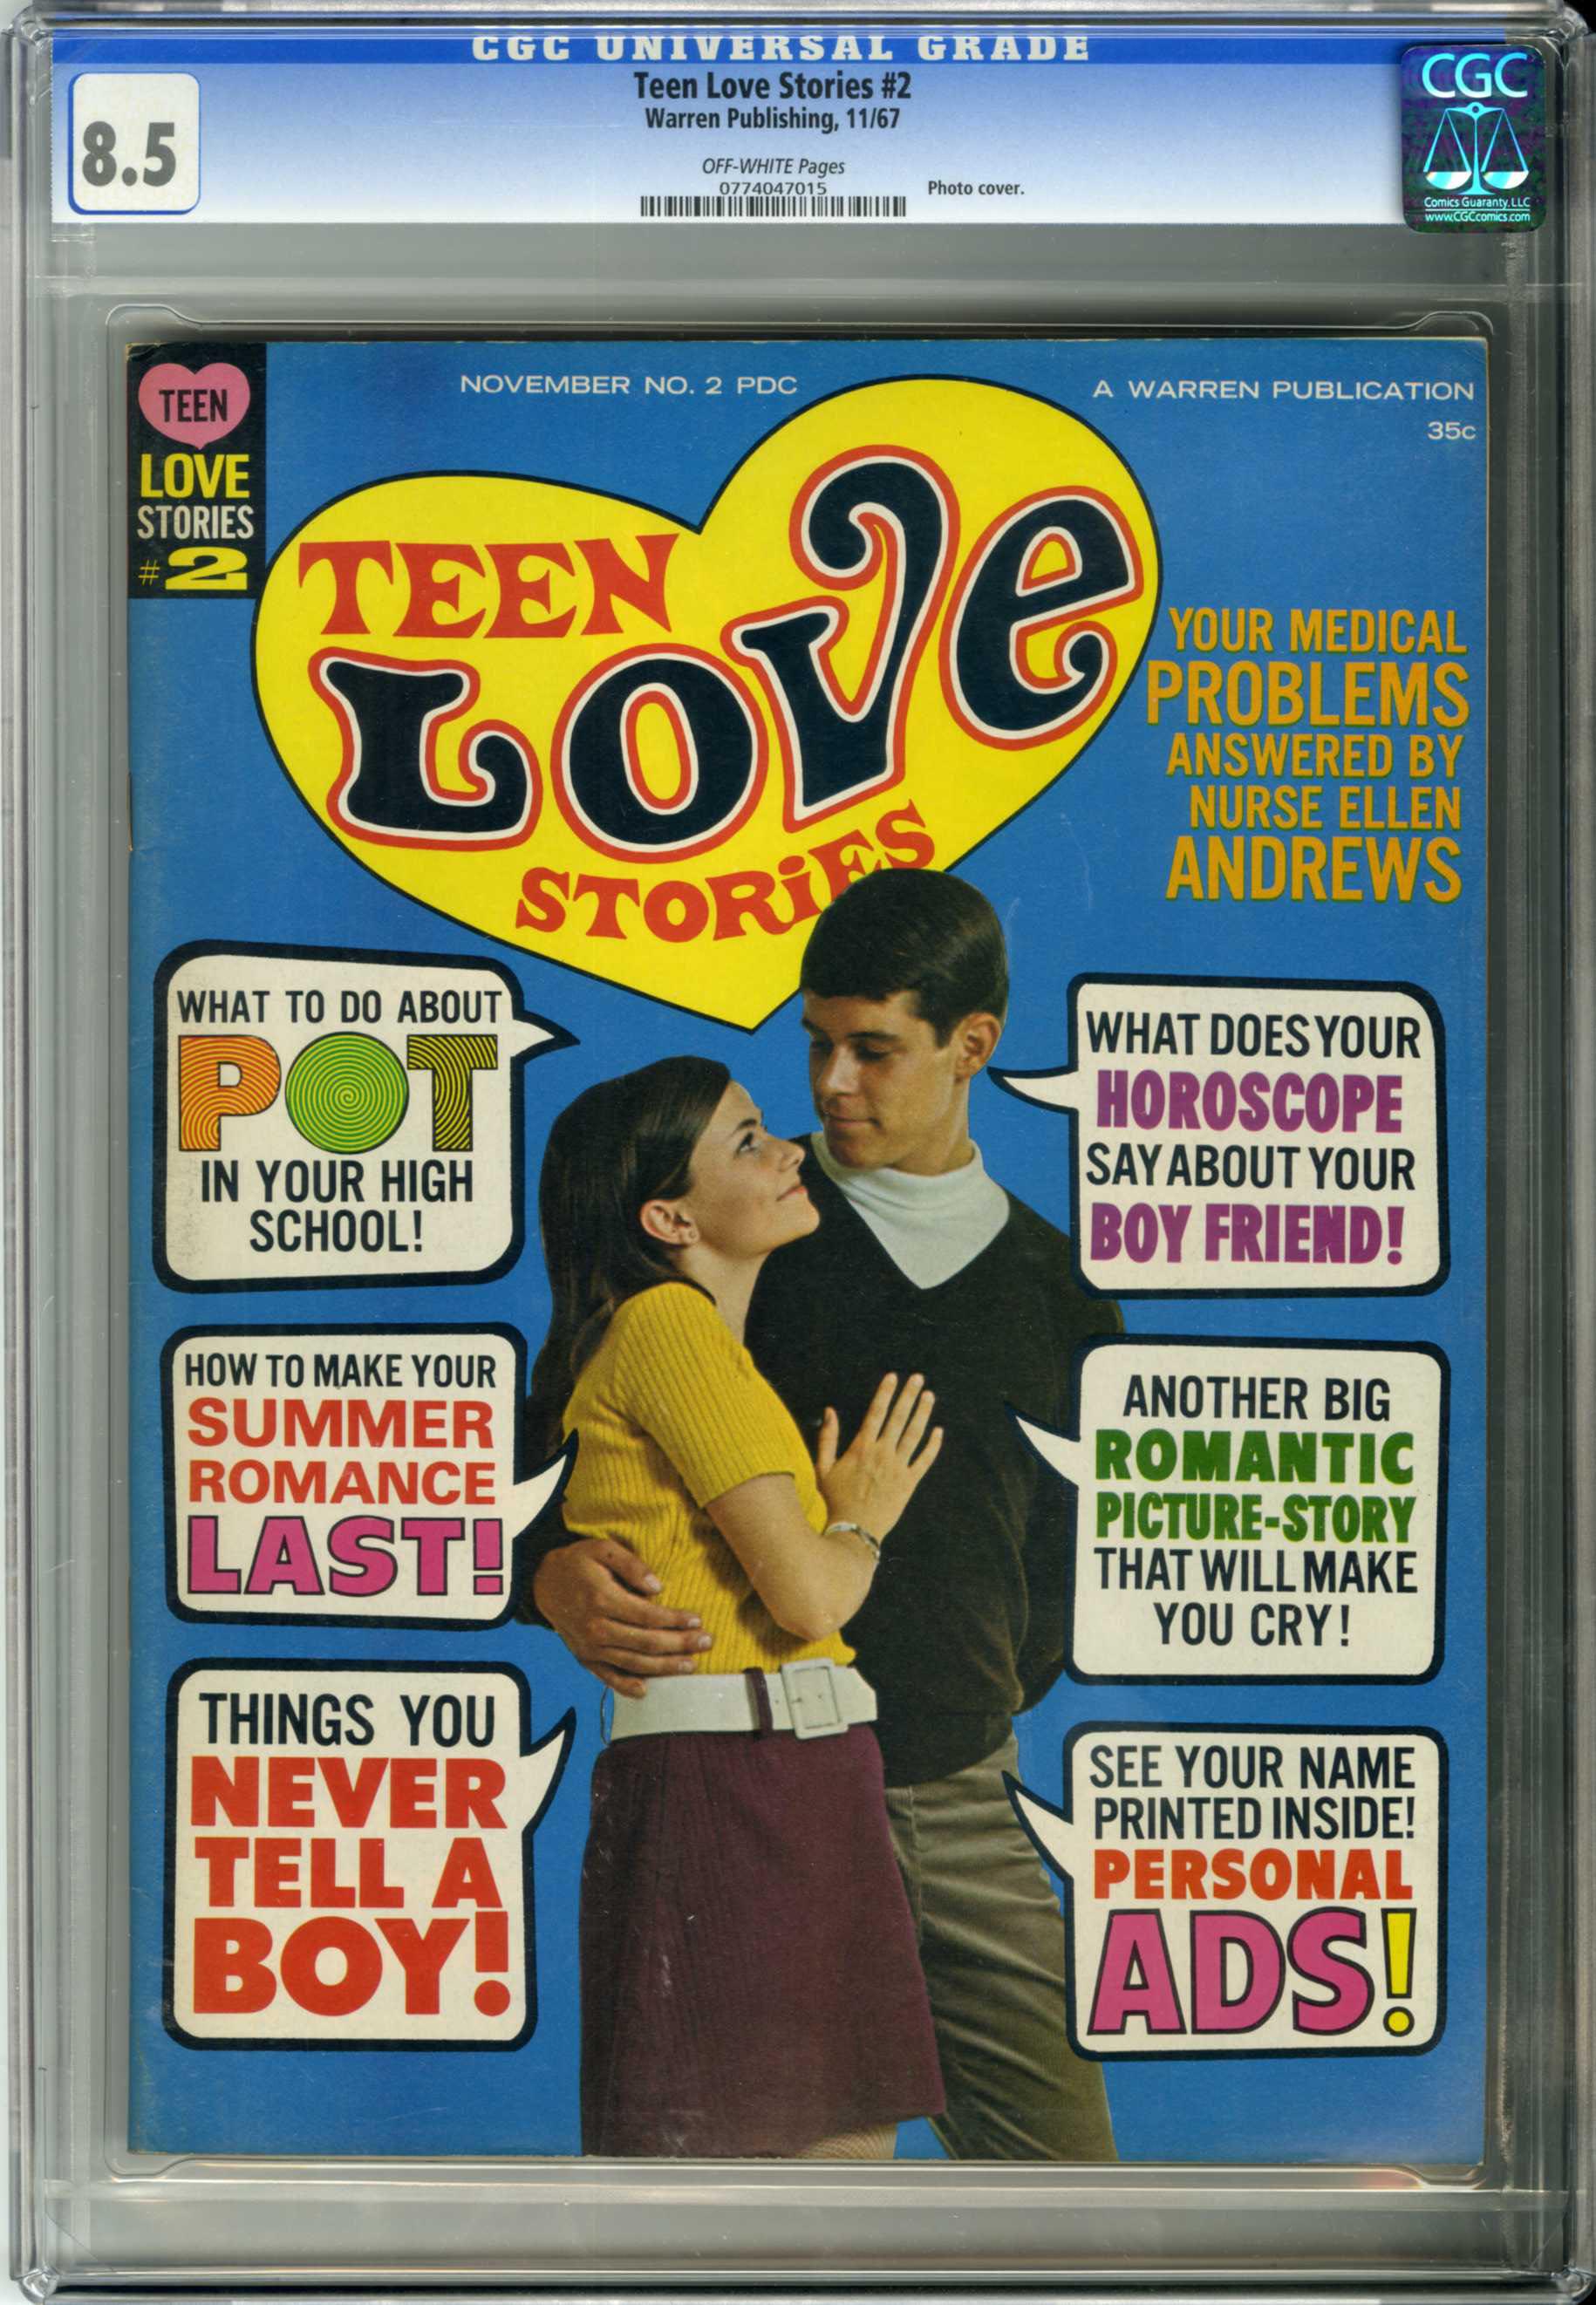 "TEEN LOVE STORIES #2 (1967) CGC VF+ 8.5 OW Pgs PHOTO CVR/MARIJUANA ""POT"" ARTICLE"